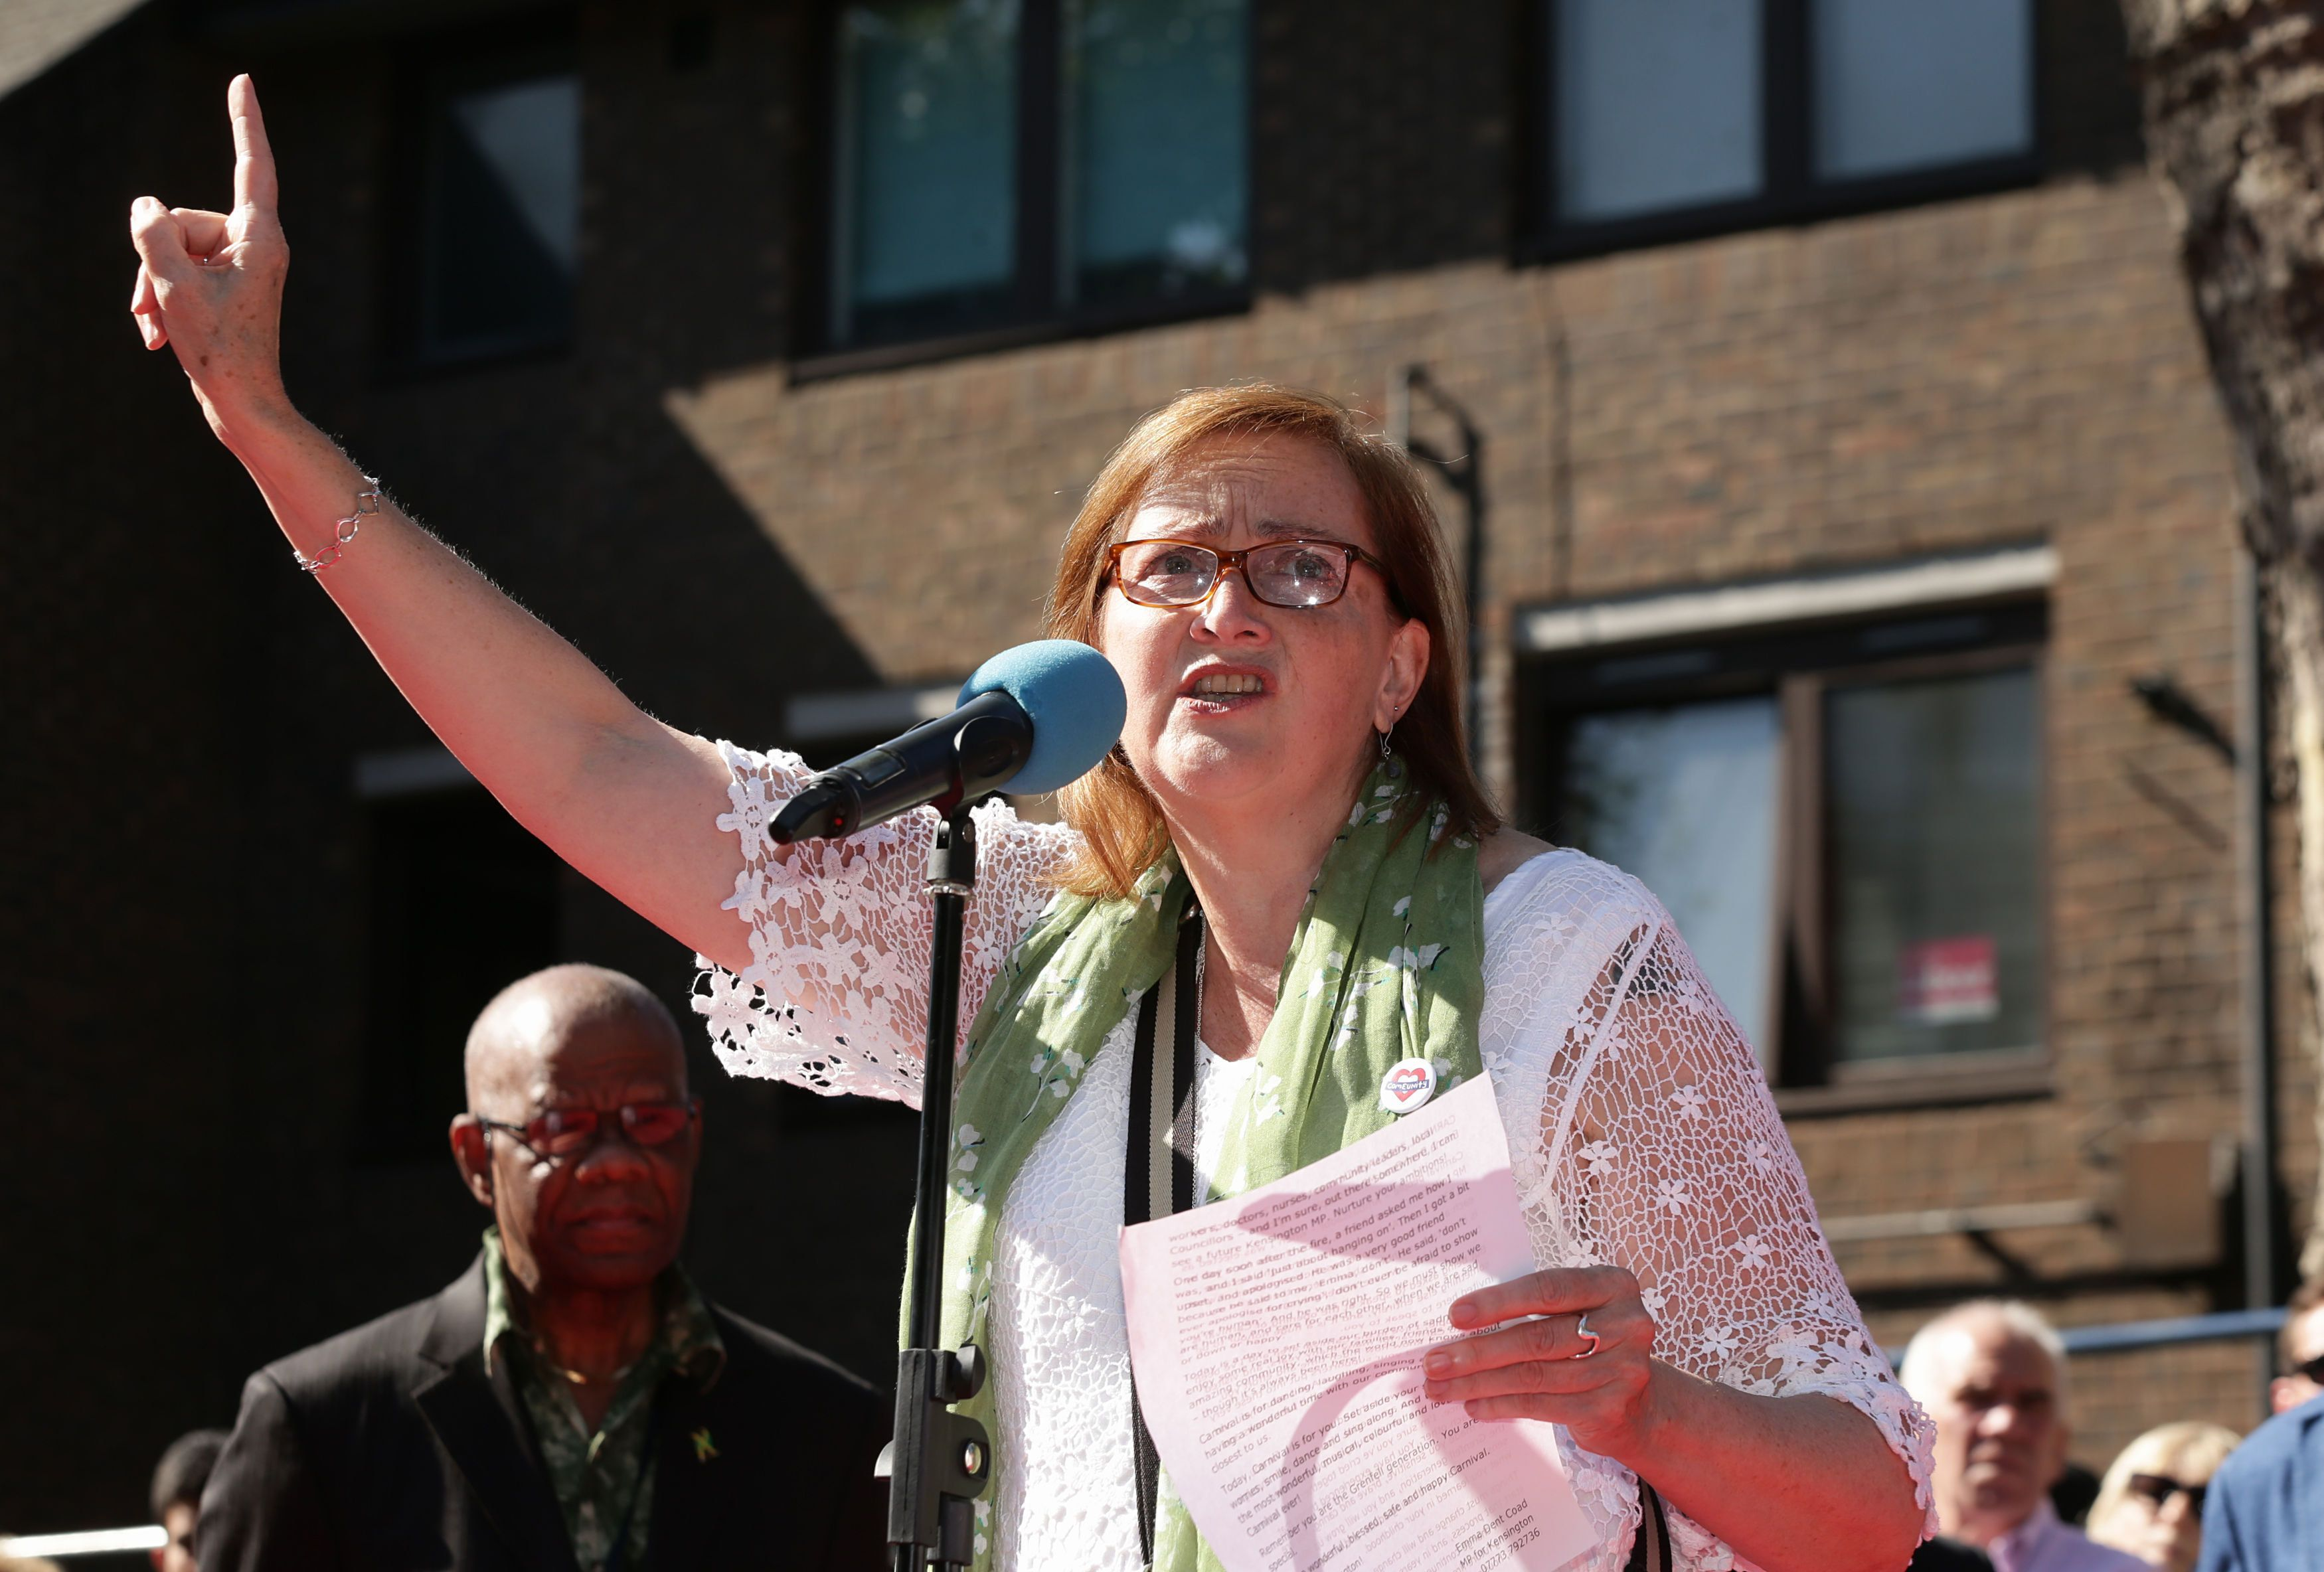 Labour MP Emma Dent Coad Launches Fresh Attack On Royal Family And Says Grenfell Survivors Have Been